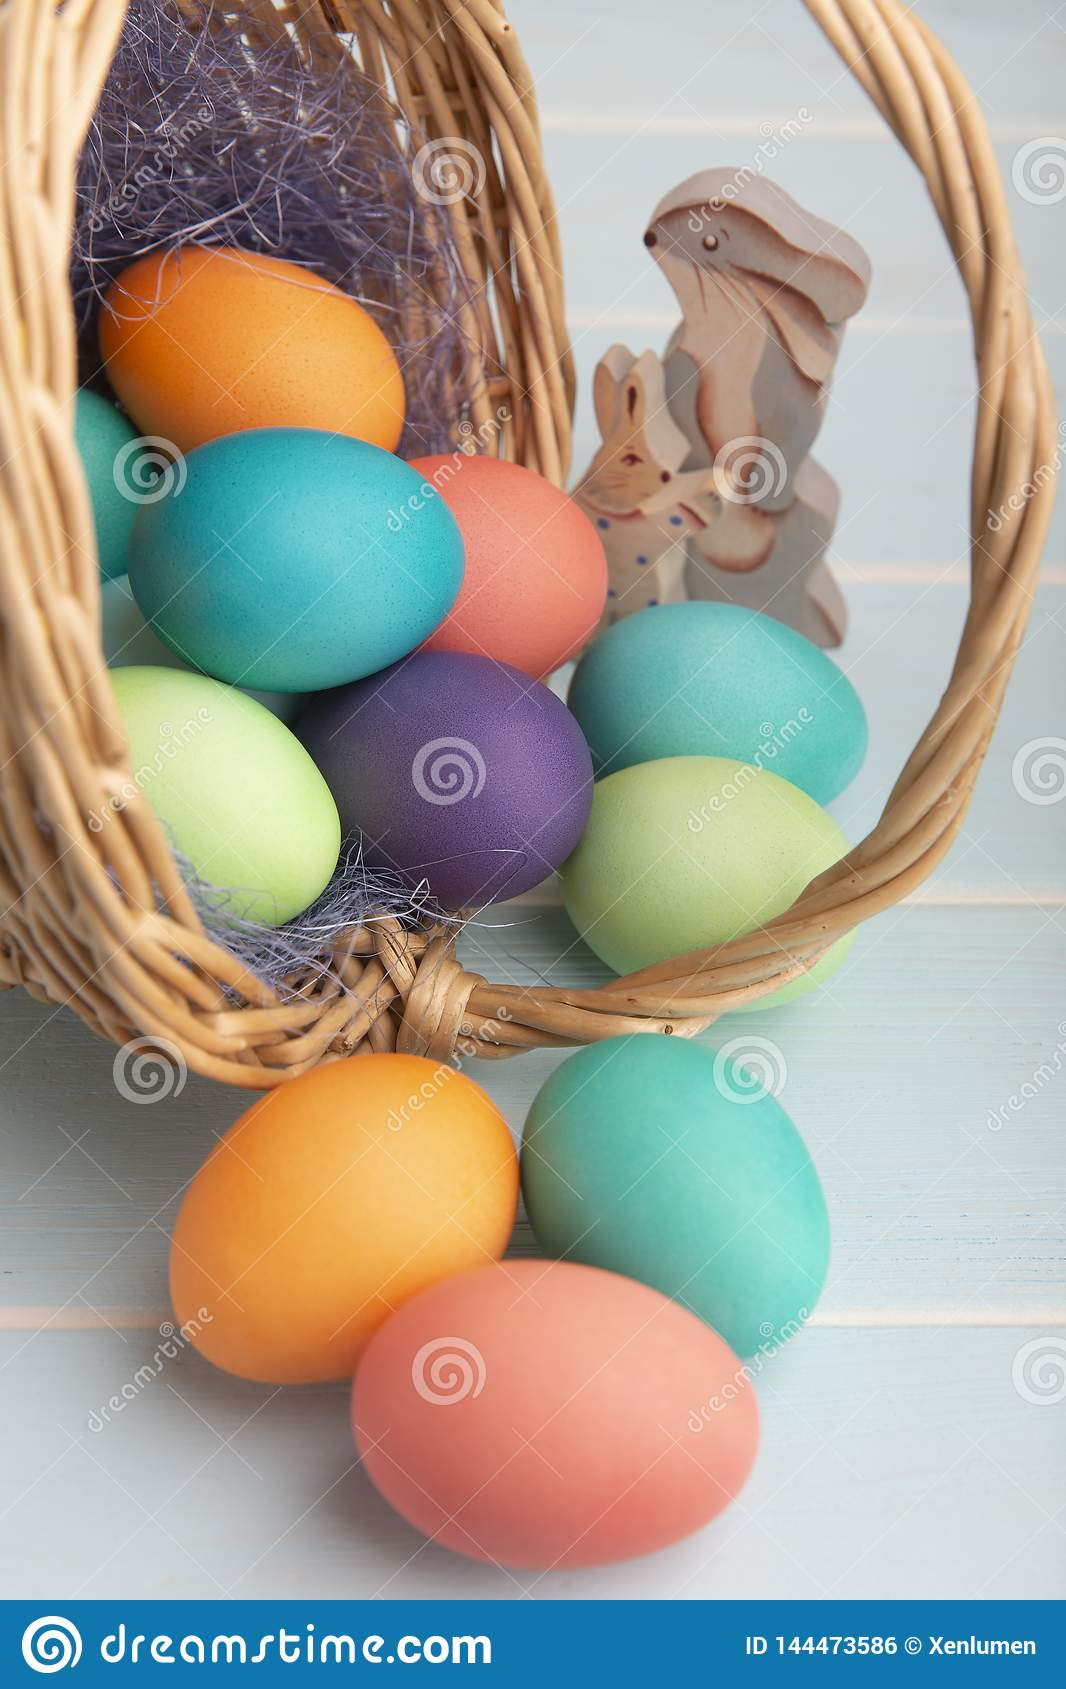 Dyed bright Easter eggs in a basket with colorful blue sisal  and wooden bunnies